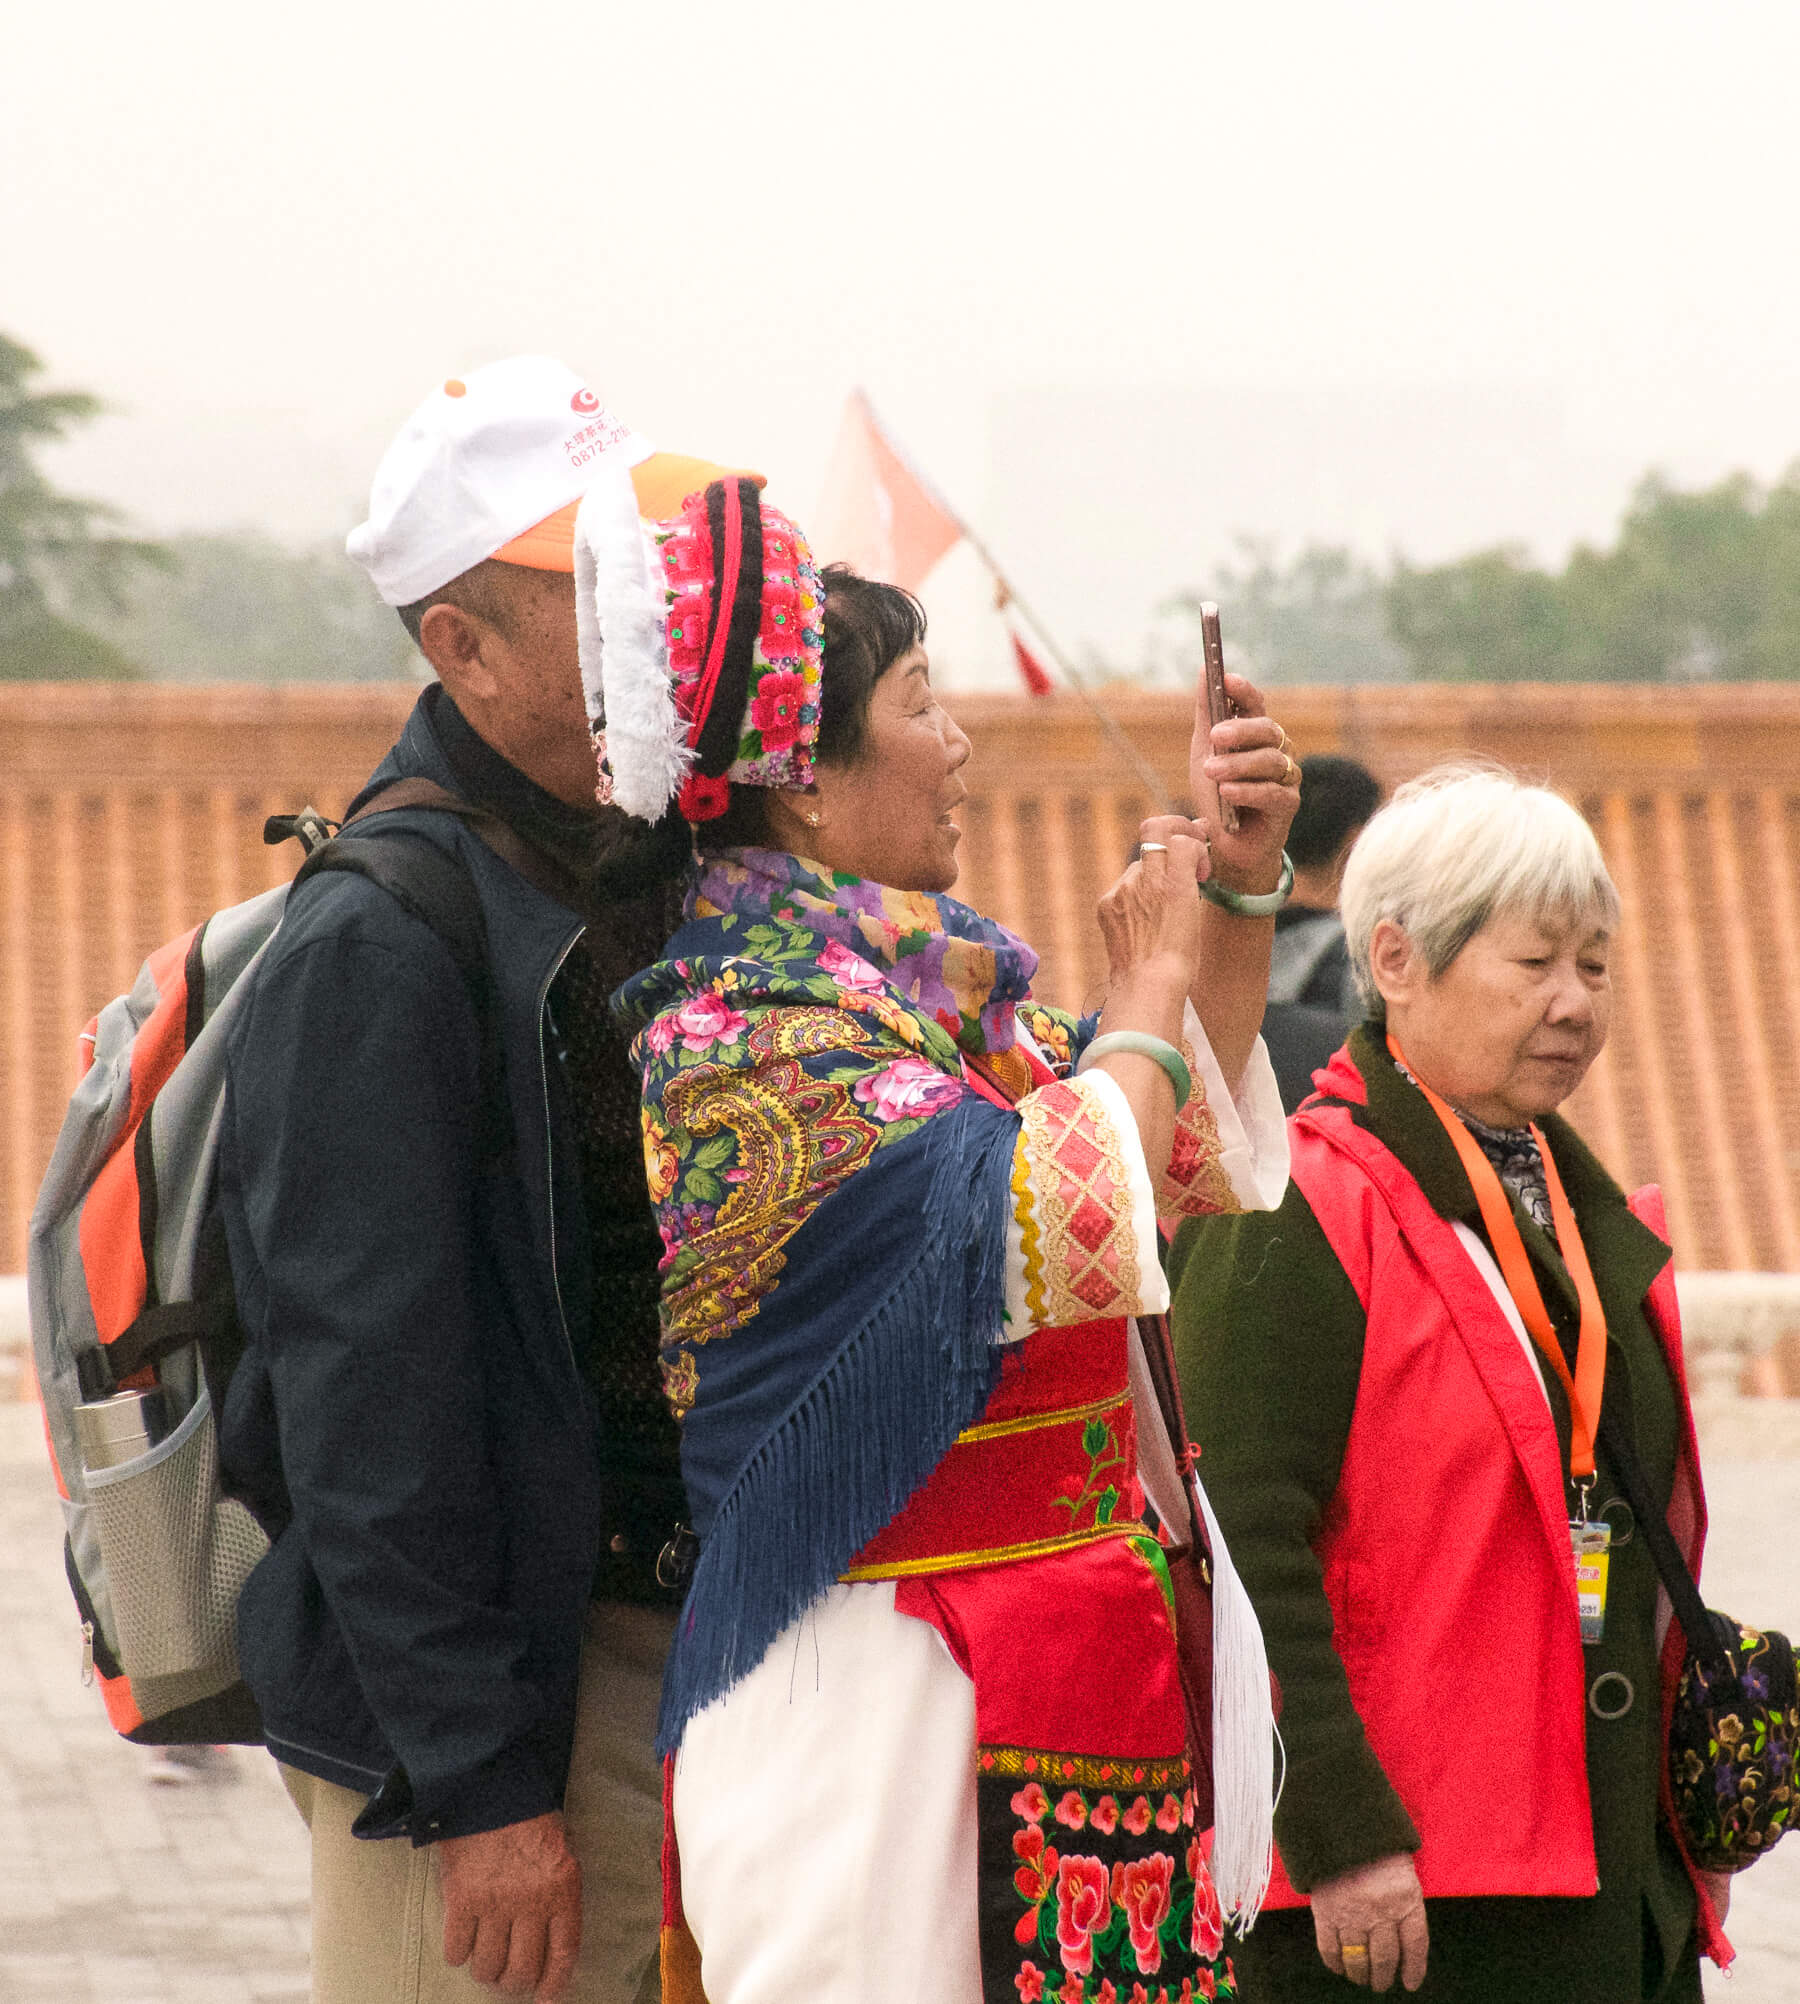 A woman dressed in traditional Chinese clothing, taking a selfie with a local man